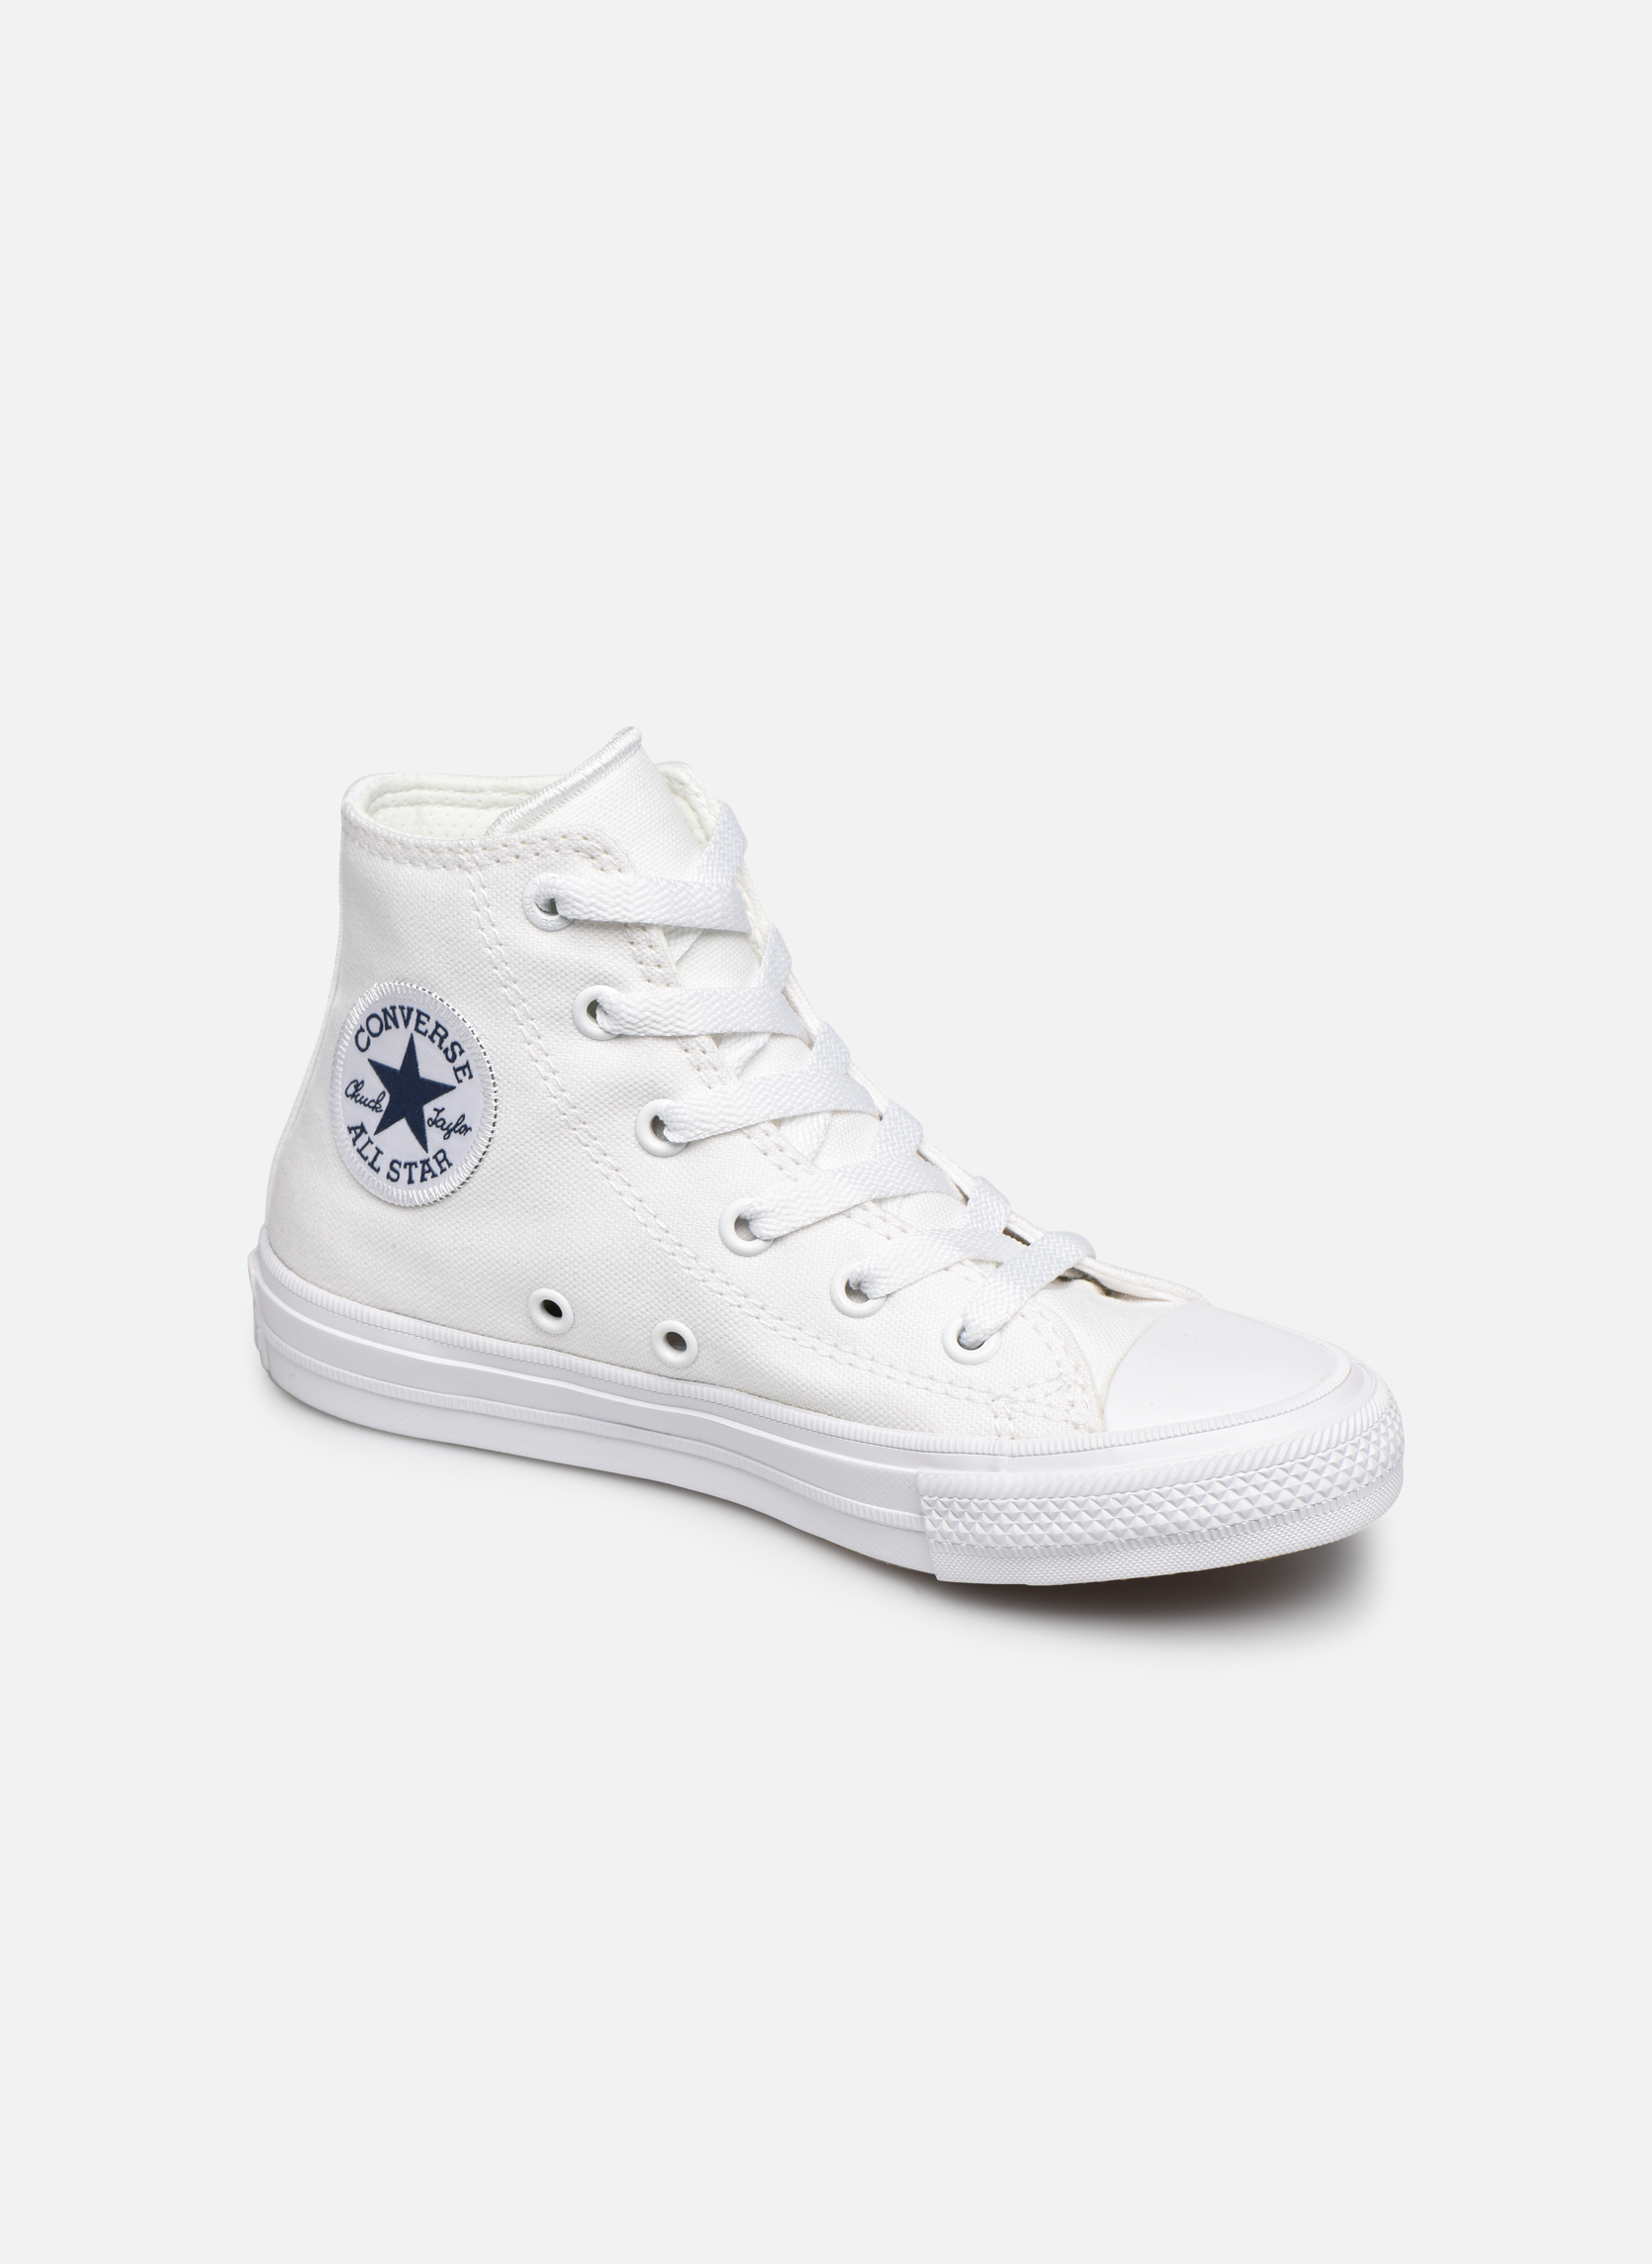 Chuck Taylor All Star II Hi White White Navy